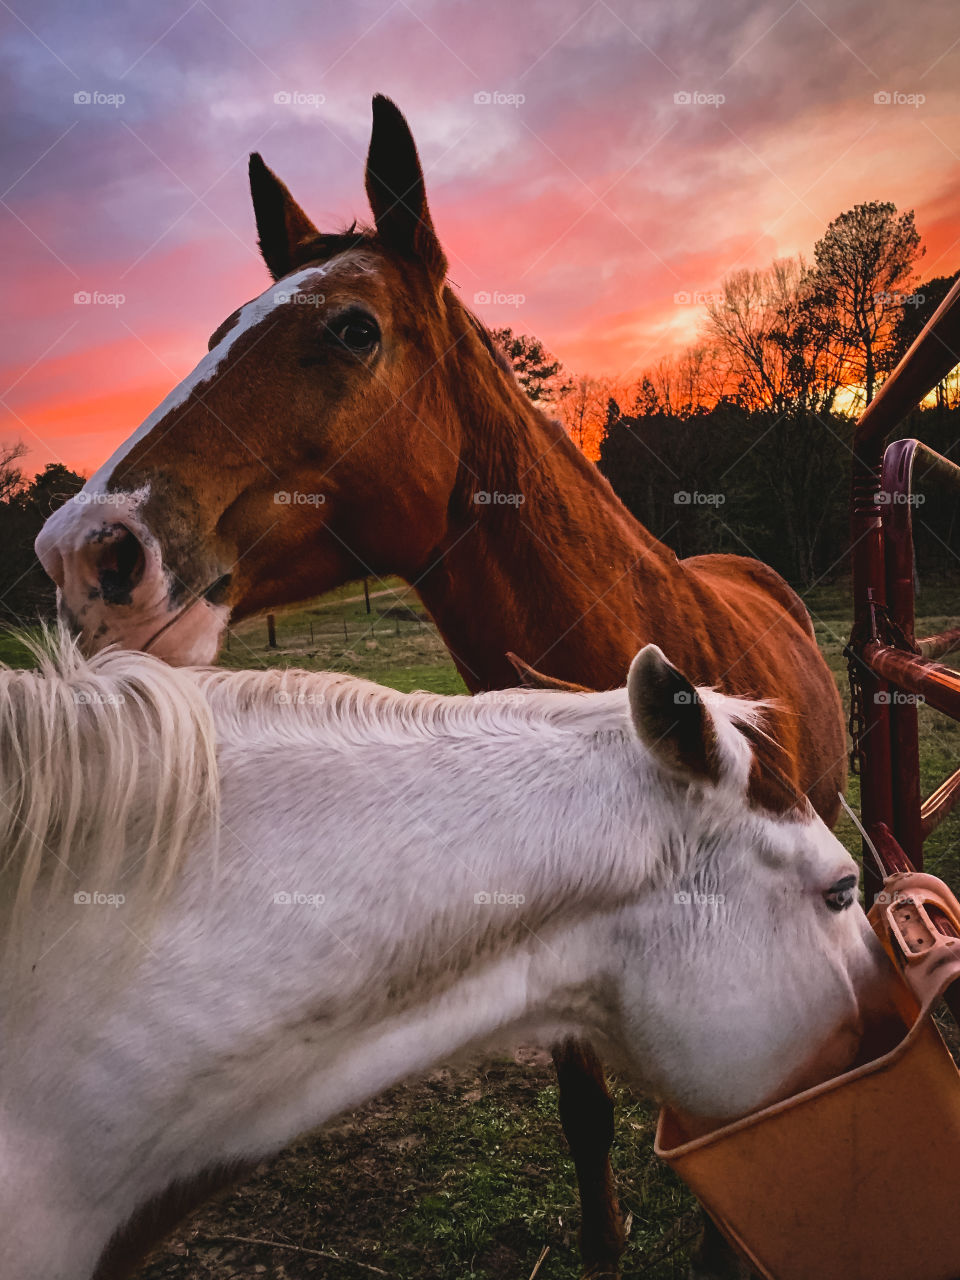 Colorful skies while feeding the horses in rural Texas